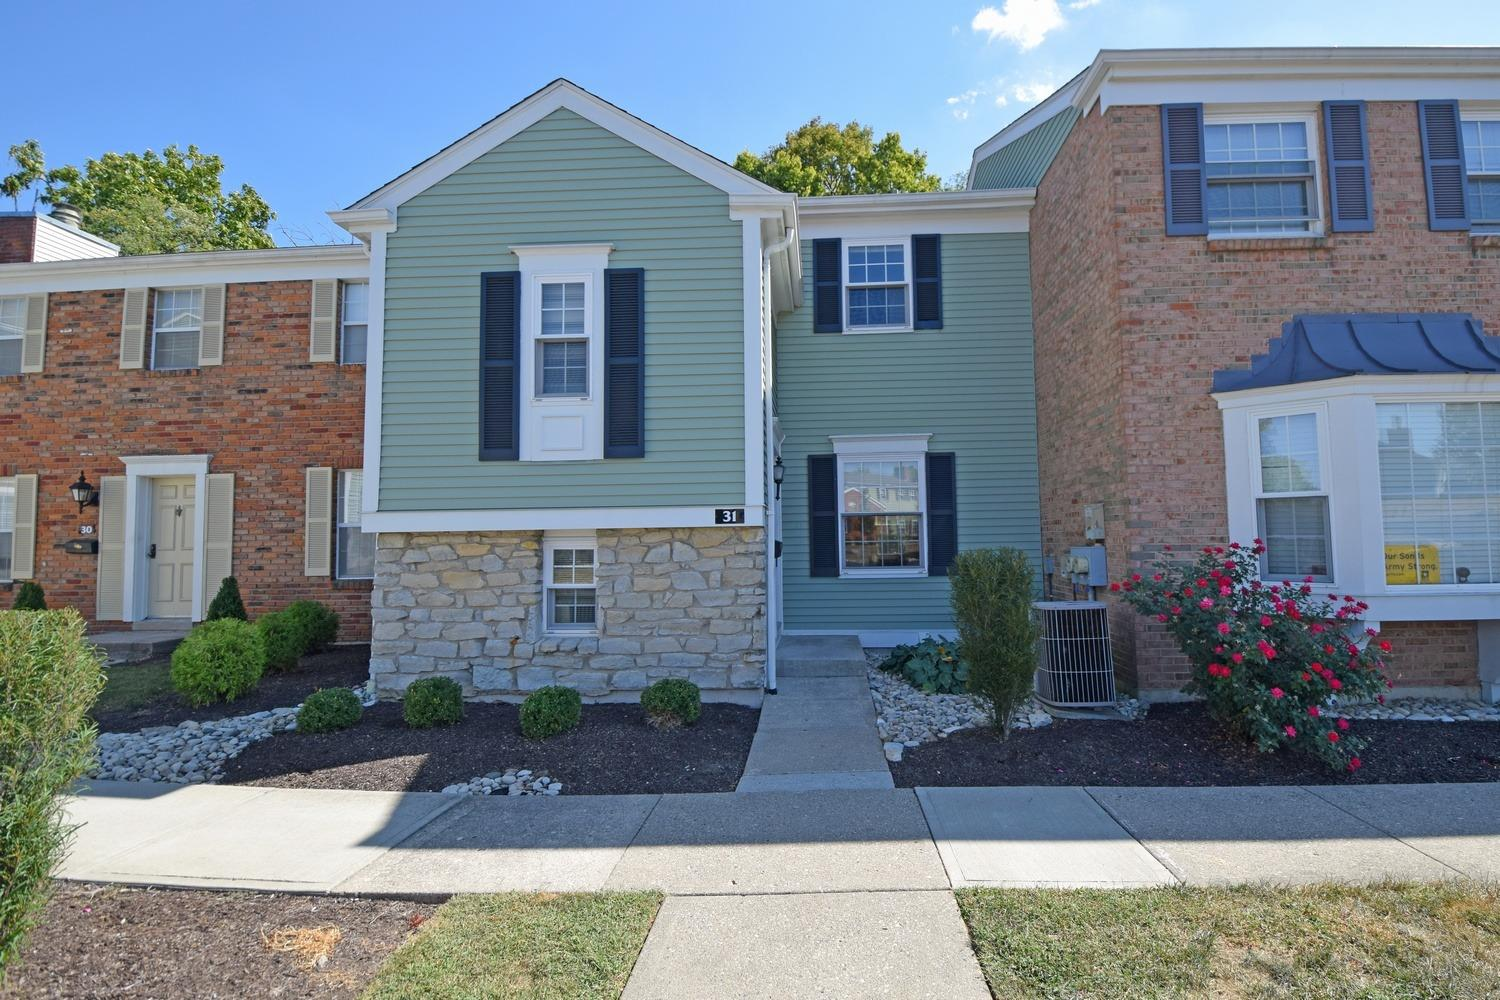 Property for sale at 31 Applewood Drive, Fairfield,  Ohio 45014